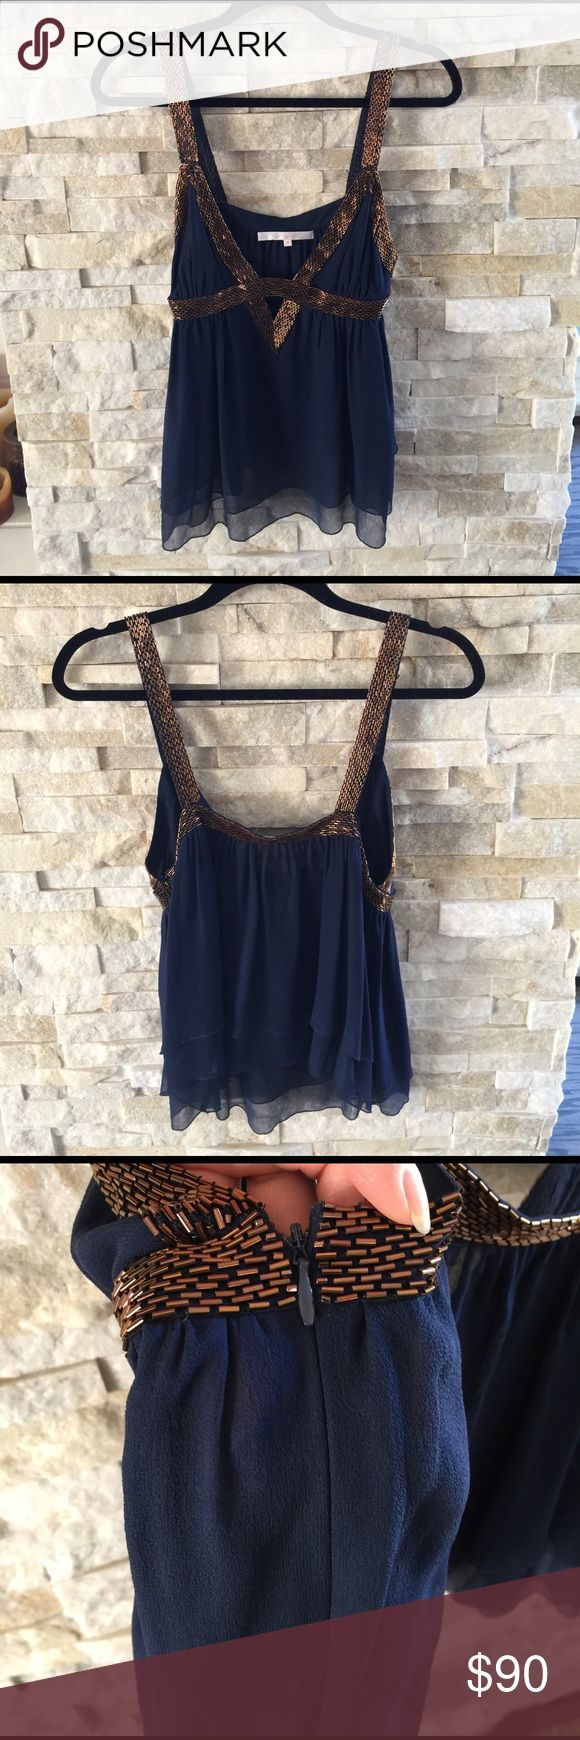 """Jenny Han Navy And gold Cami Navy 100% silk top with gold beading detail on straps and along the bust.  Double layered and tiered silk creates a super delicate effect. This top is gorgeous and I have held onto it and still LOVE it.  Measures 27"""" from shoulder to bottom hem.  Size M fits a size 4/6. Worn once! Jenny Han Tops Camisoles"""